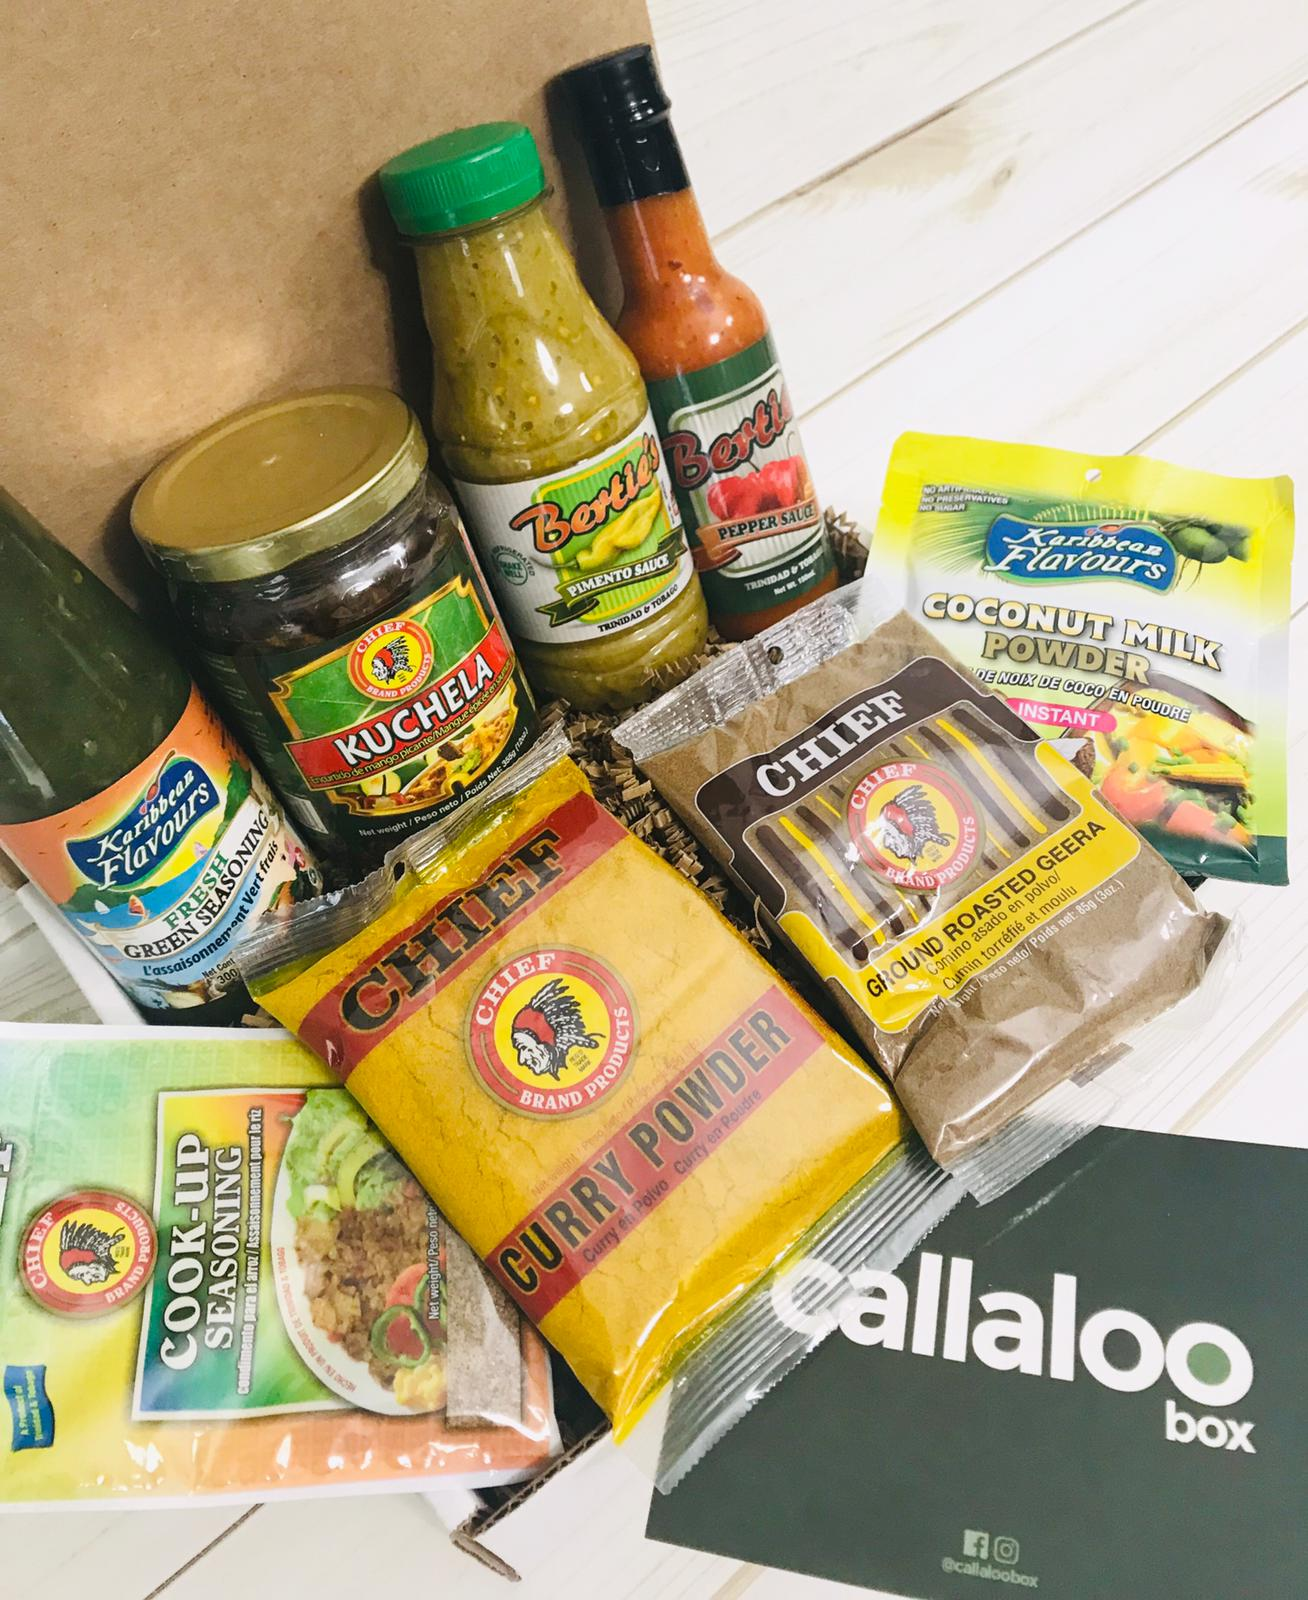 The Trinidad & Tobago Essentials Box